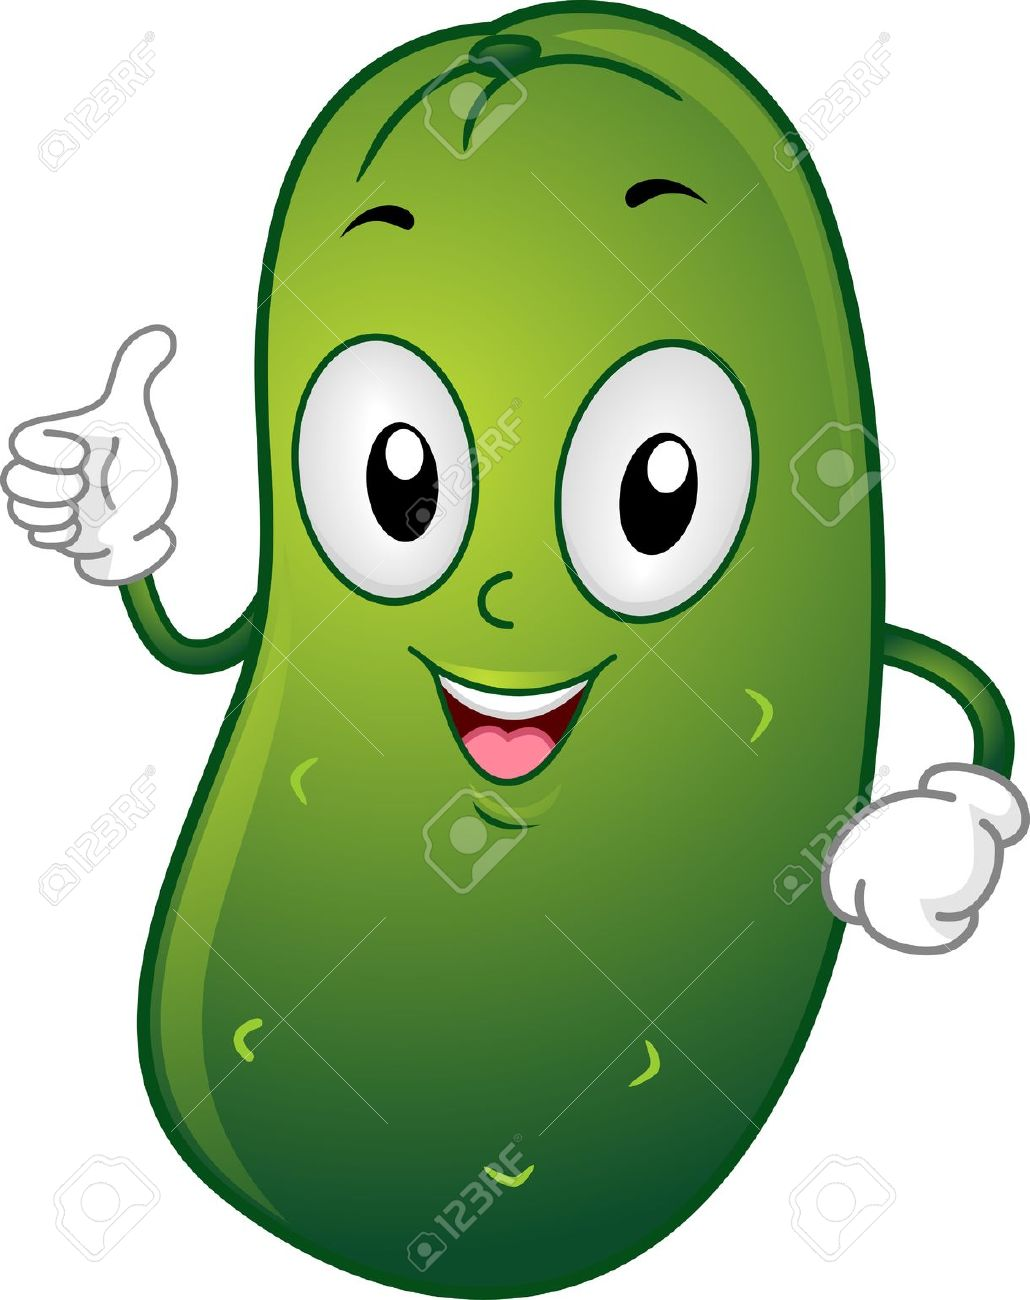 png free  clip art clipartlook. Pickle clipart.